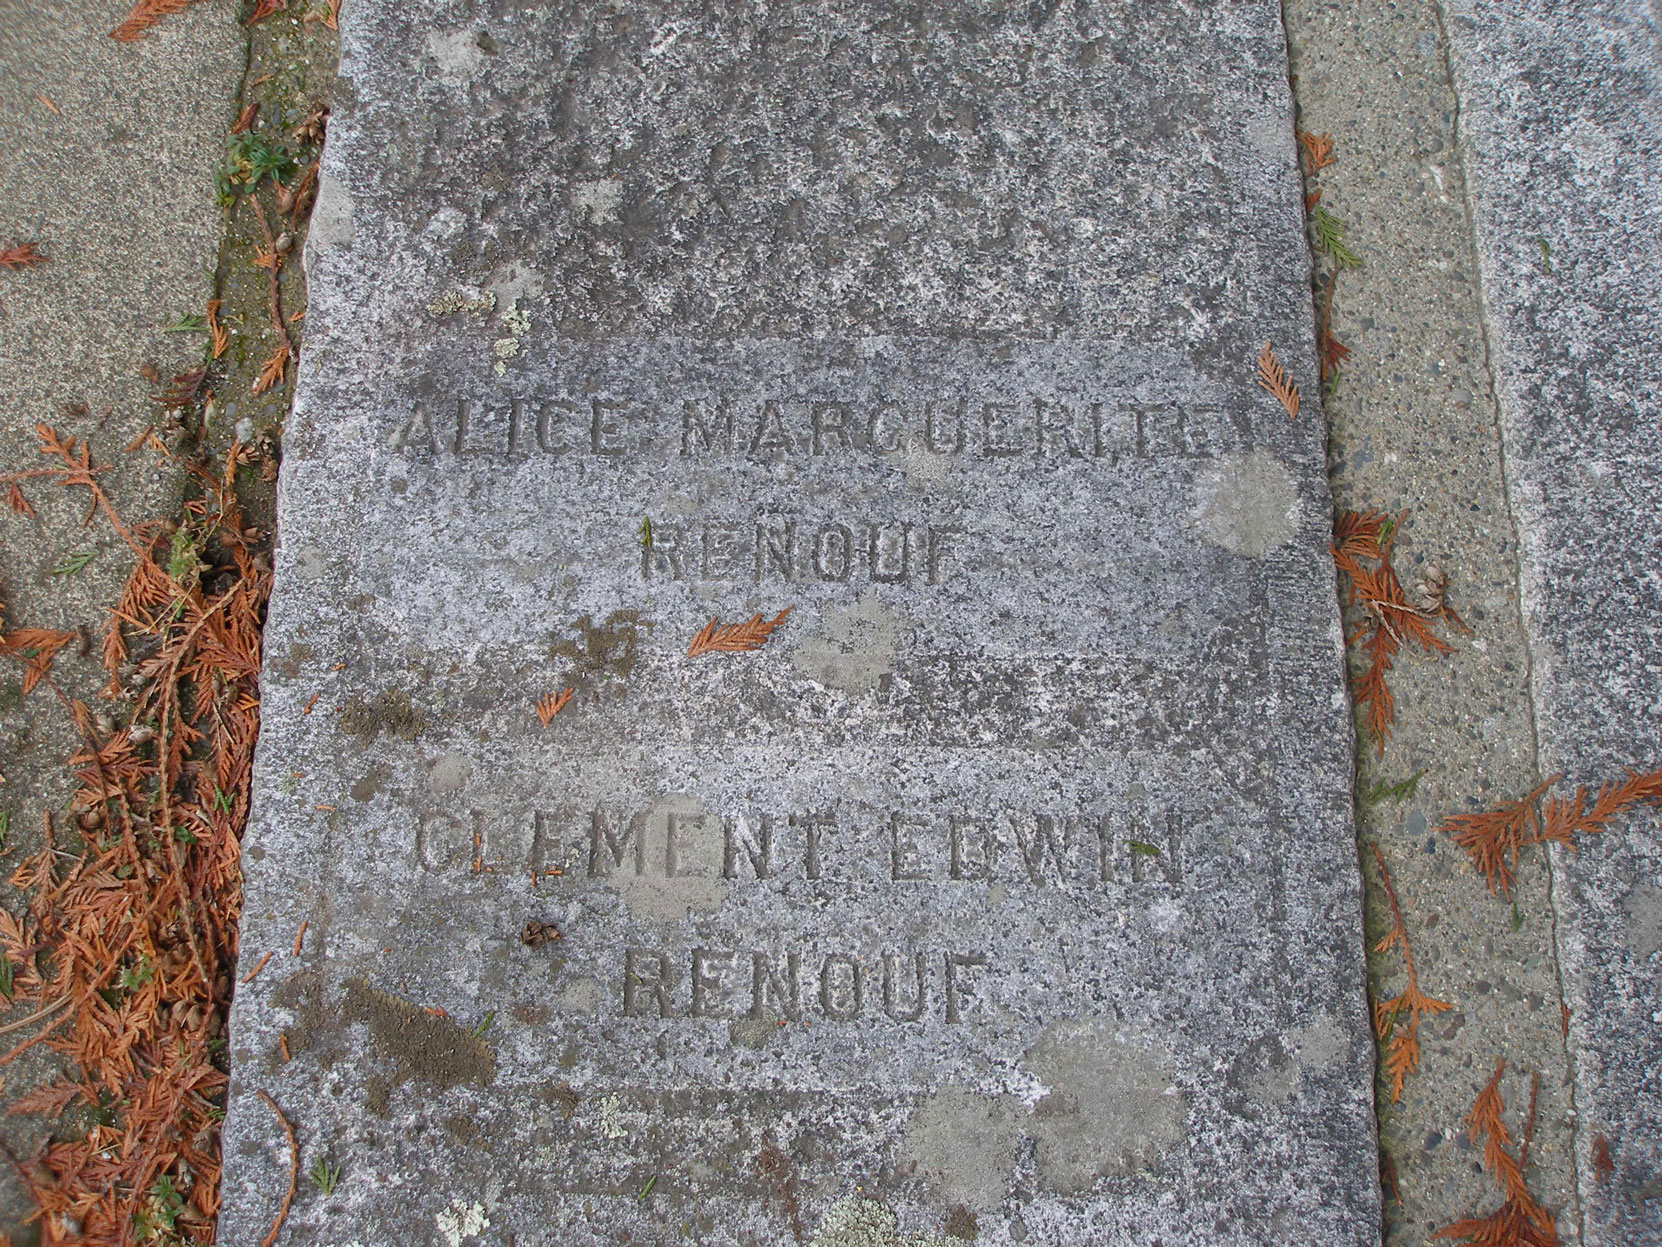 Clement Edwin Renouf grave inscription, Ross Bay Cemetery, Victoria, B.C. (photo by Temple Lodge No. 33 Historian)